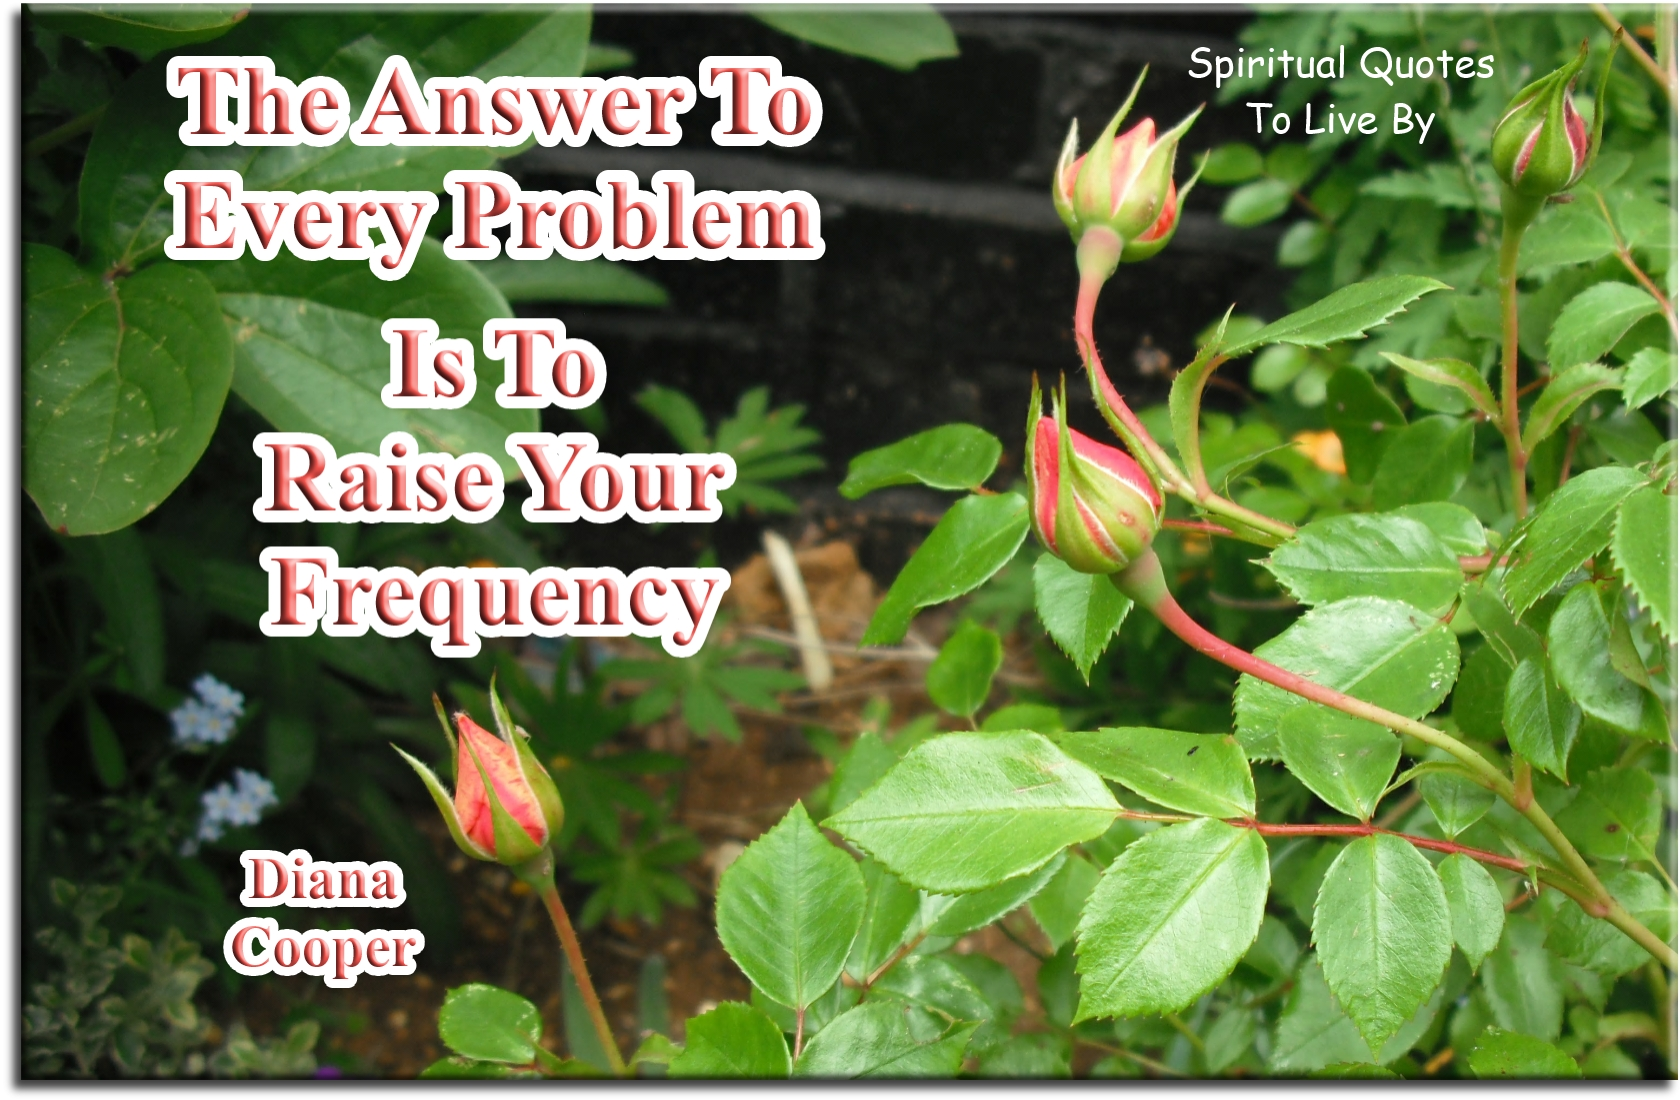 Diana Cooper quote: The answer to every problem is to raise your frequency. - Spiritual Quotes To Live By